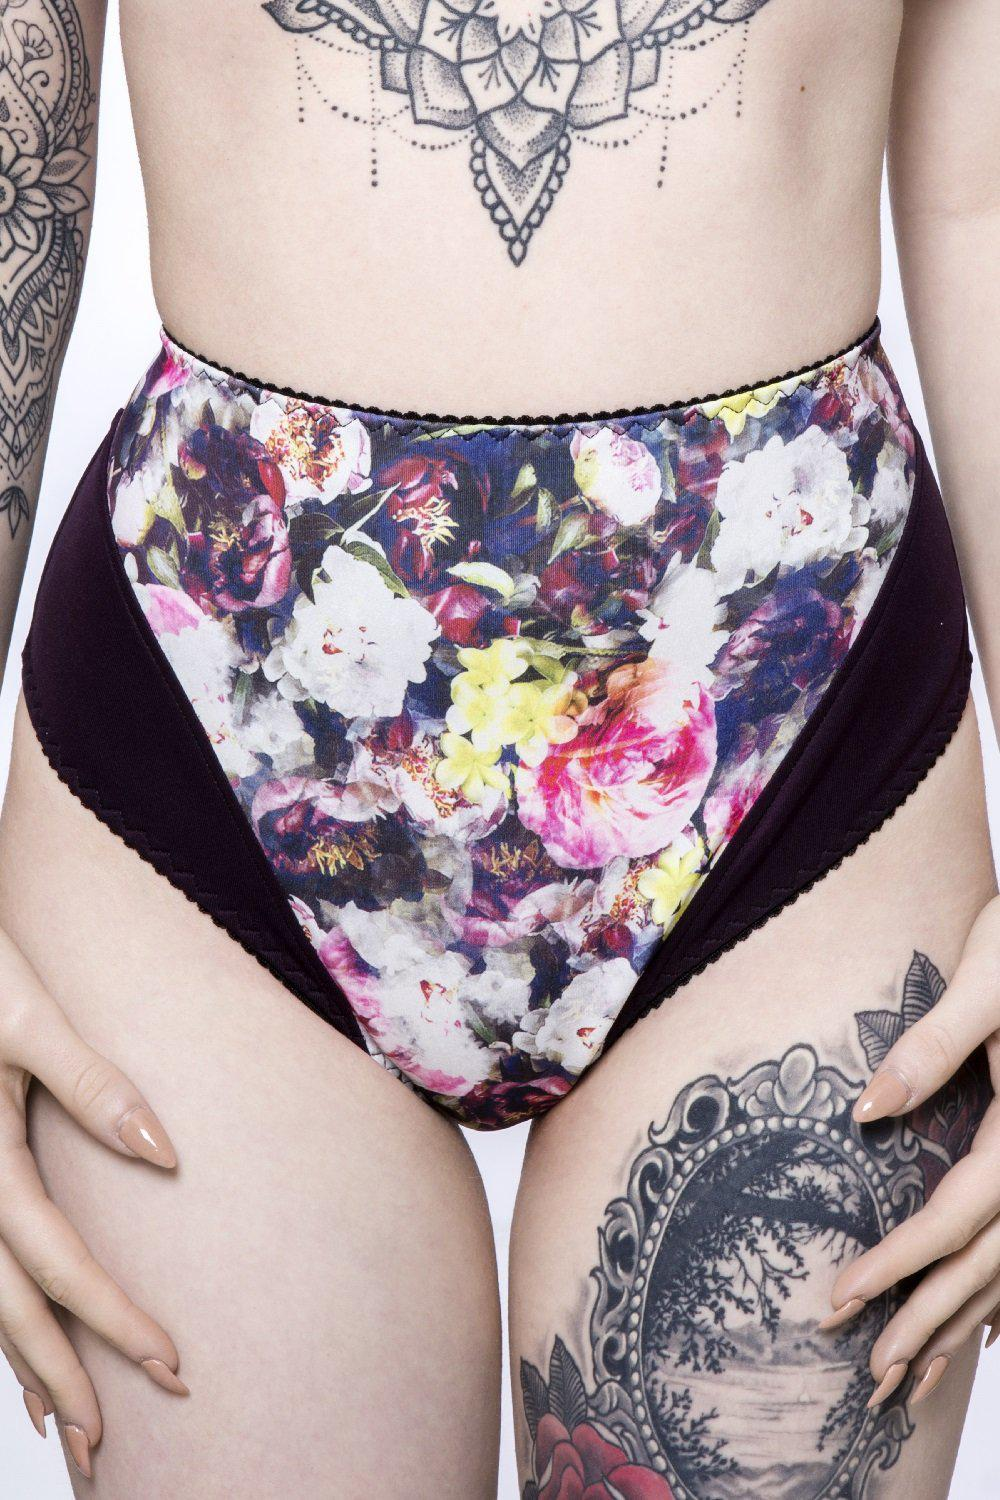 Sugarplum high waist panties in floral confetti fabric print by ColieCo